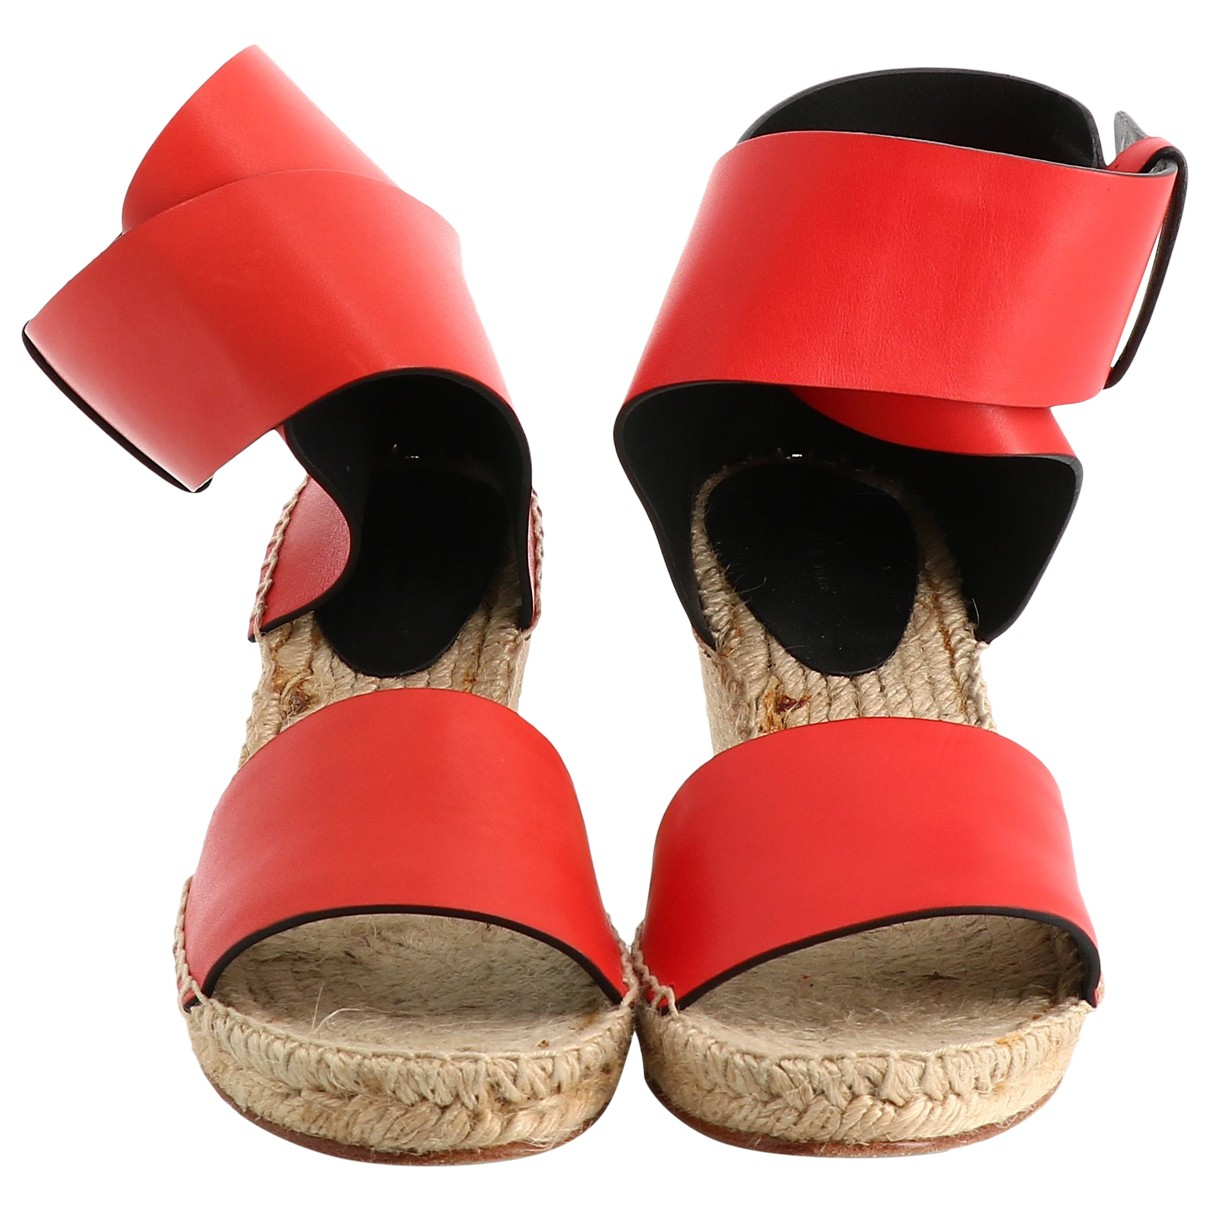 Celine \N Red Leather Sandals for Women 38 EU